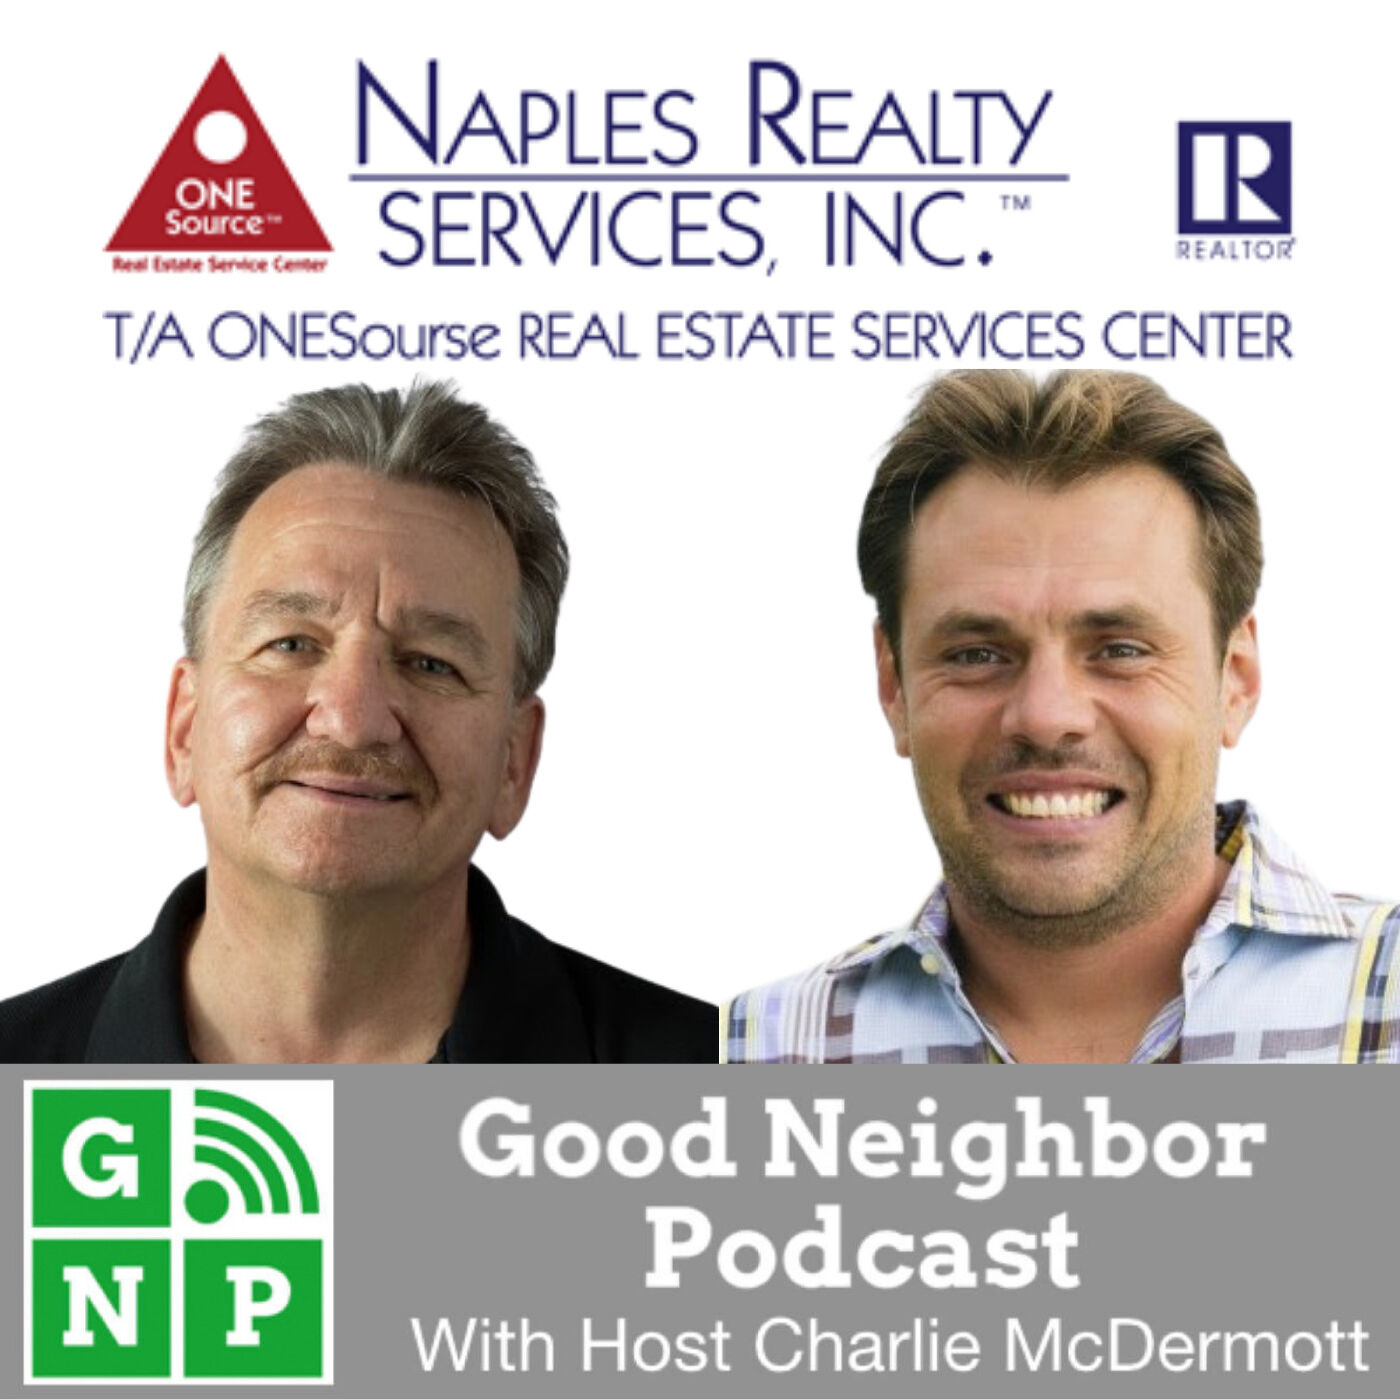 EP #521: Naples Realty Services with Steve Gitkos